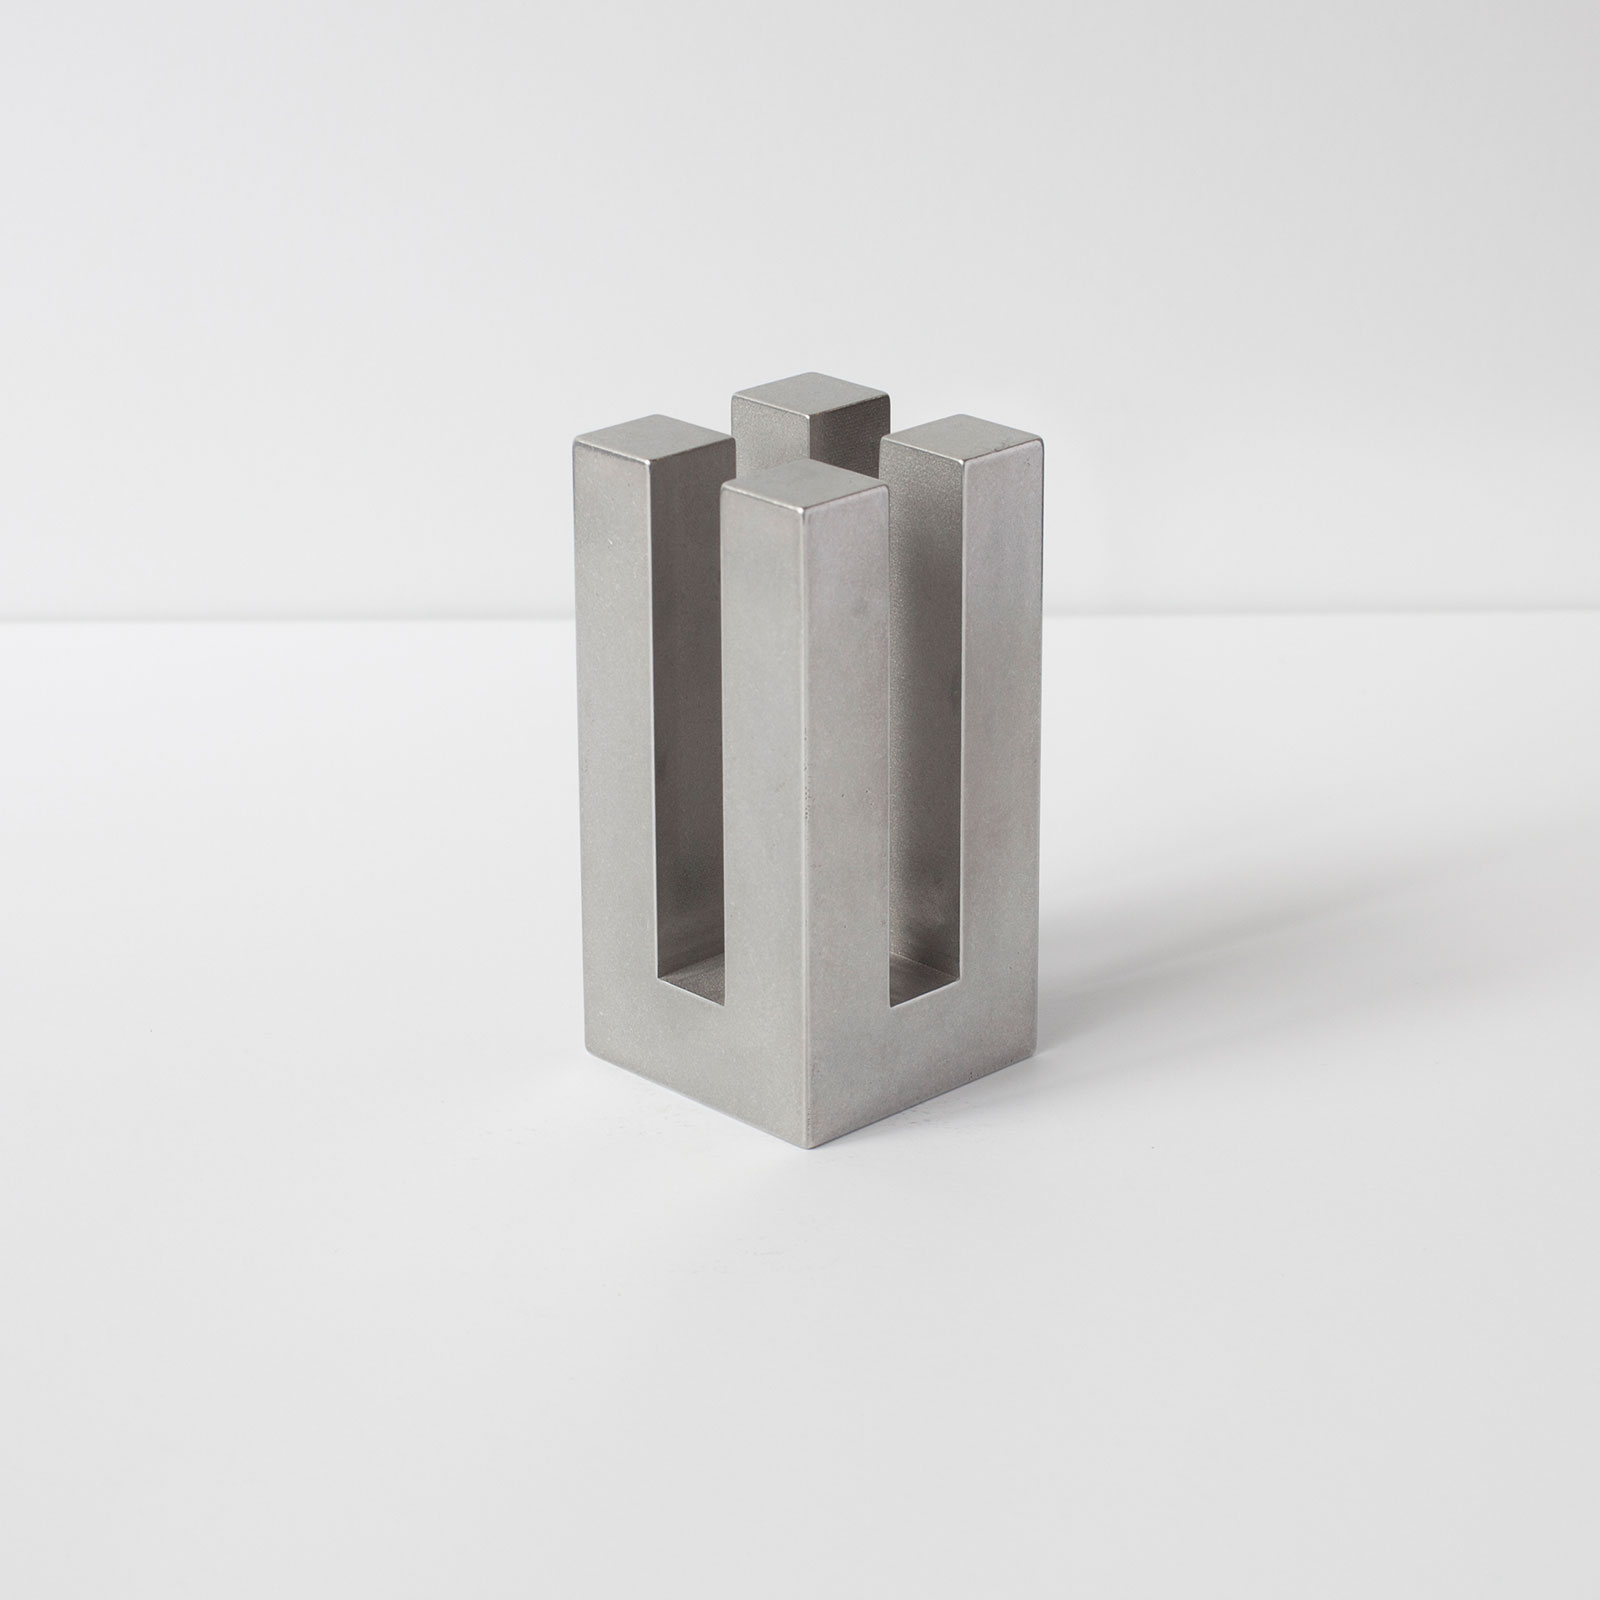 Jeff Tall Candle Holder Aluminium By Studio Acs Hero 1